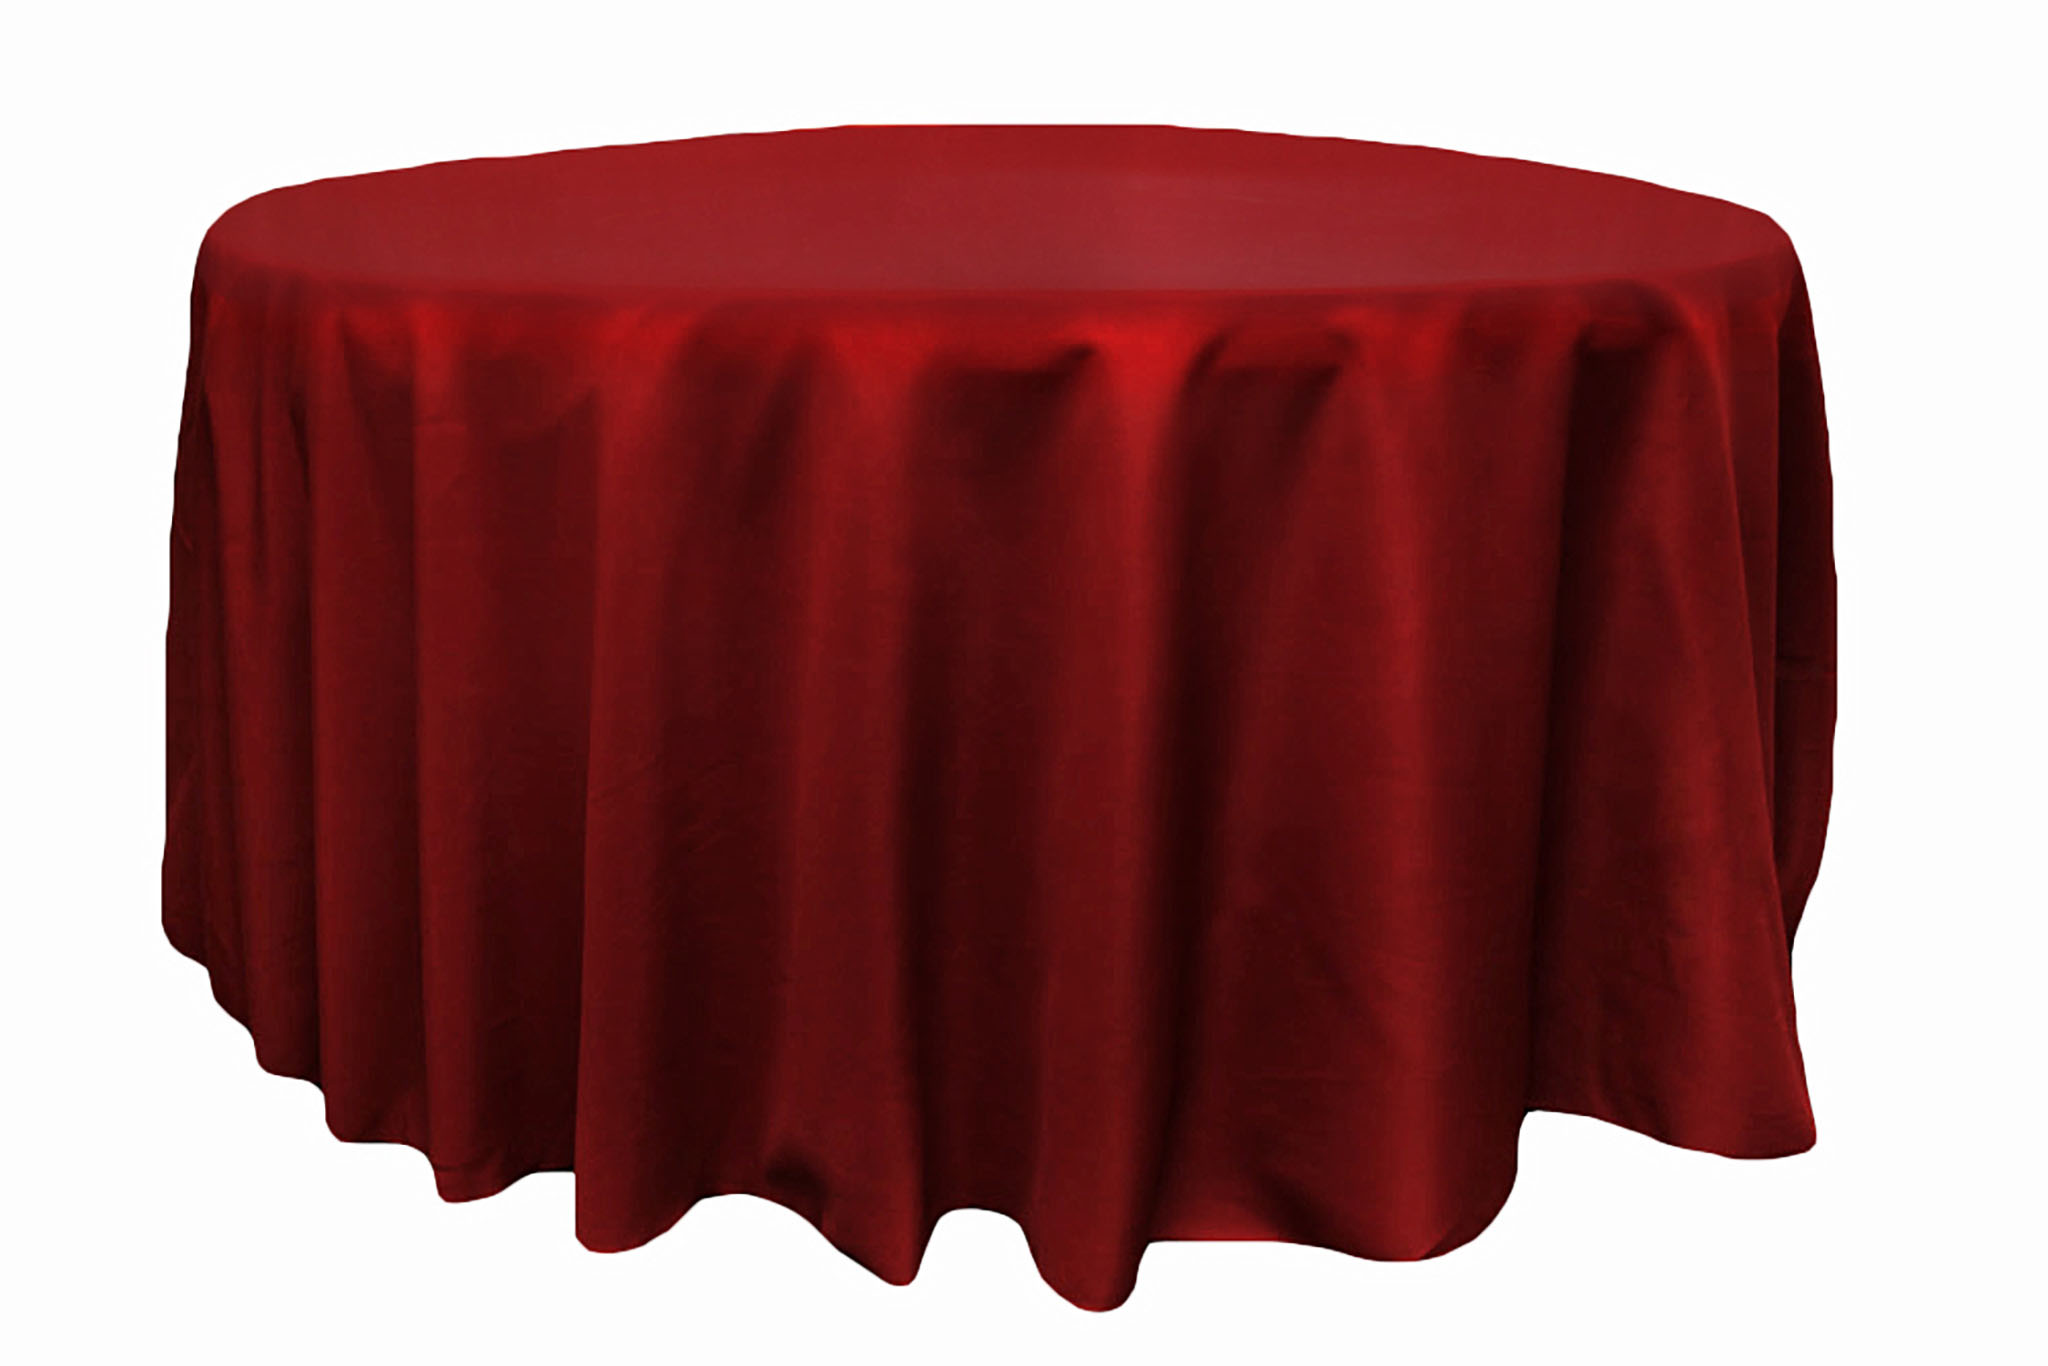 Tremendous Bwe Tablecloth Red Belle Weddings And Eventsbelle Weddings Download Free Architecture Designs Embacsunscenecom